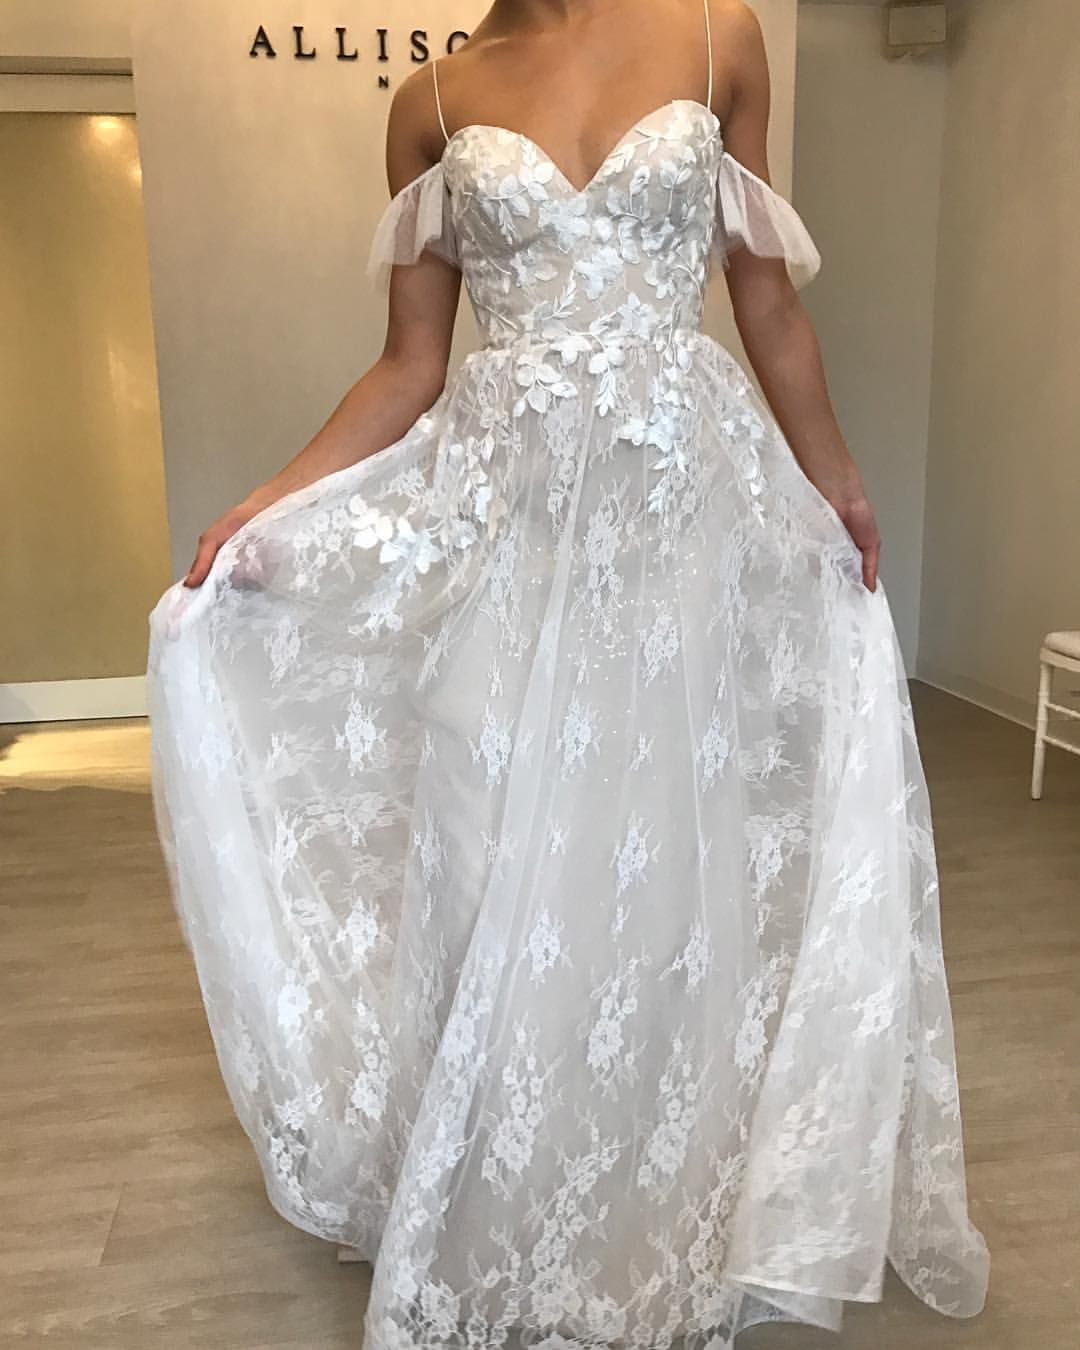 Ti Adora By Allison Webb On Instagram Throwing It On Back To The Release Of Our Spring 2019 Stunners We Love O Gowns Wedding Dresses Lace Wedding Dresses [ 1350 x 1080 Pixel ]